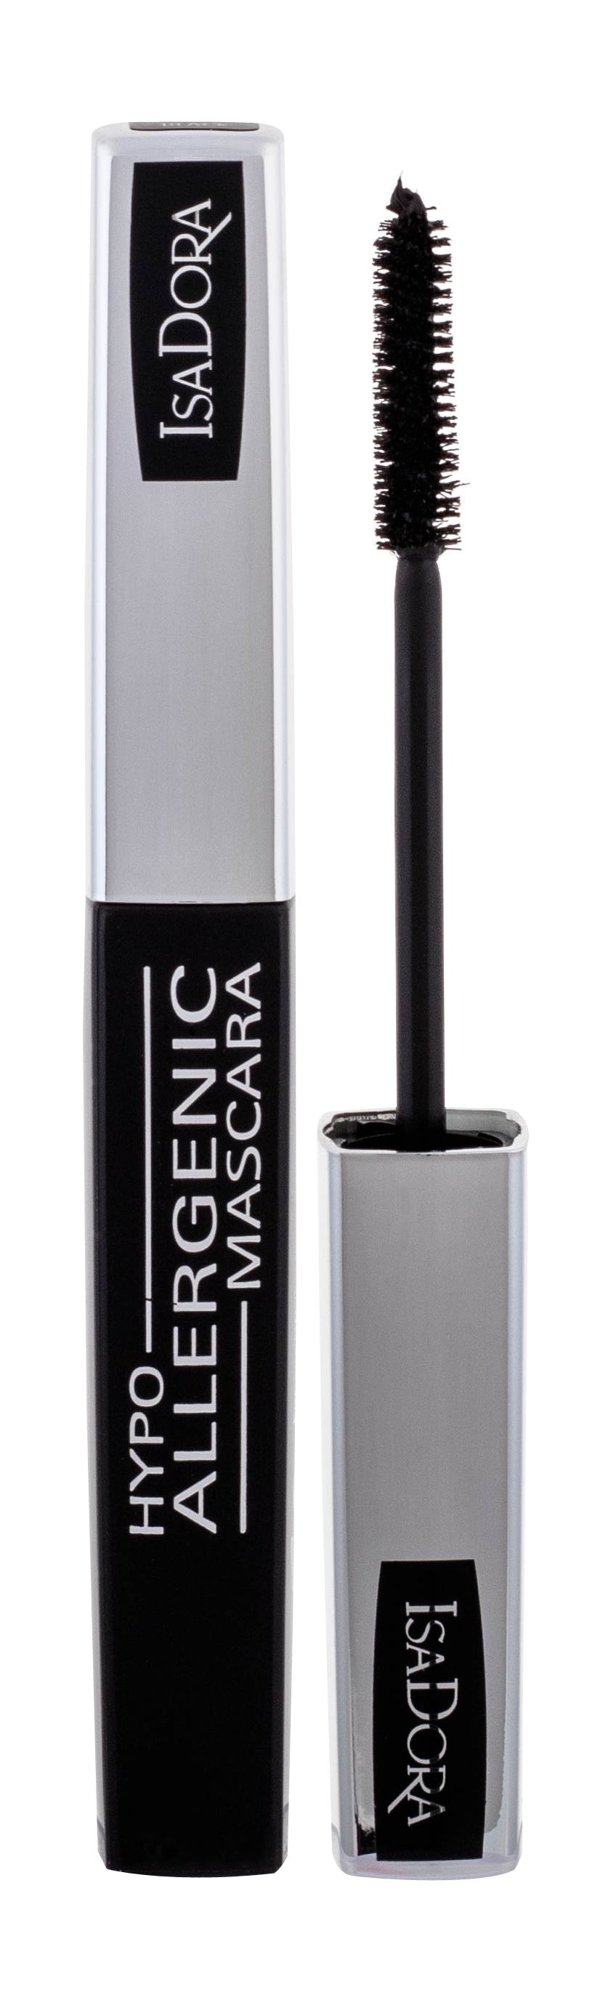 IsaDora Hypo-Allergenic Cosmetic 7ml 01 Black